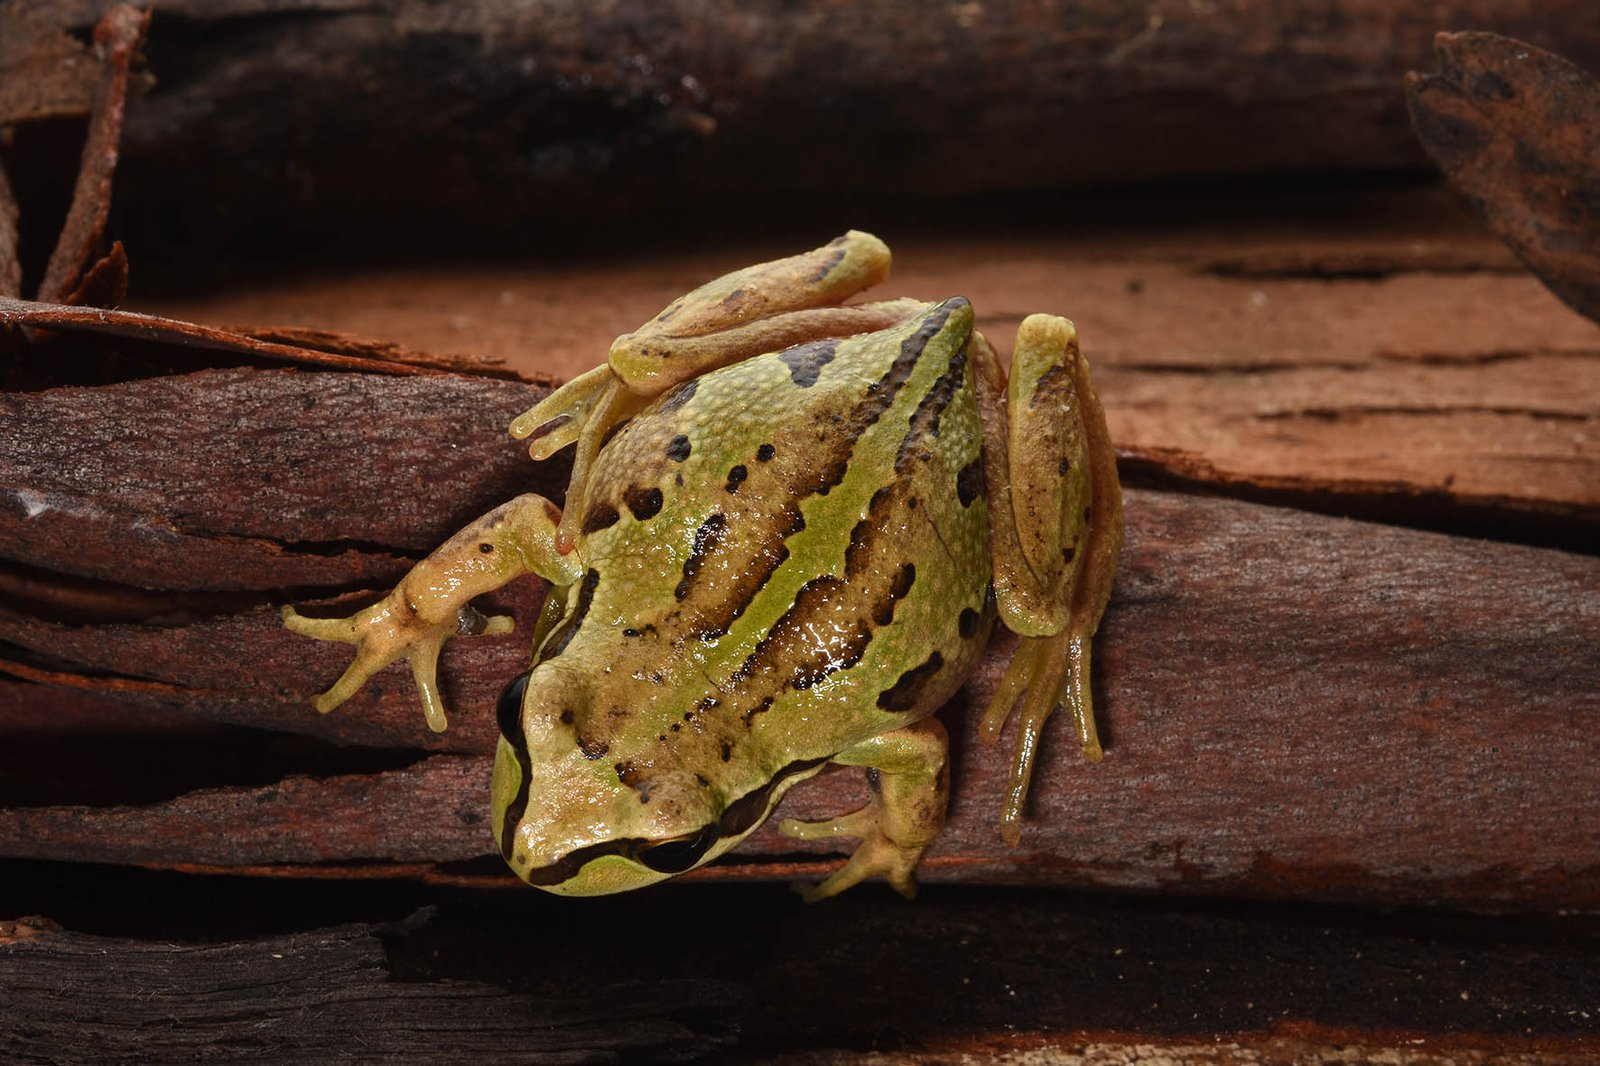 Whistling Tree Frog (Litoria verreauxii)